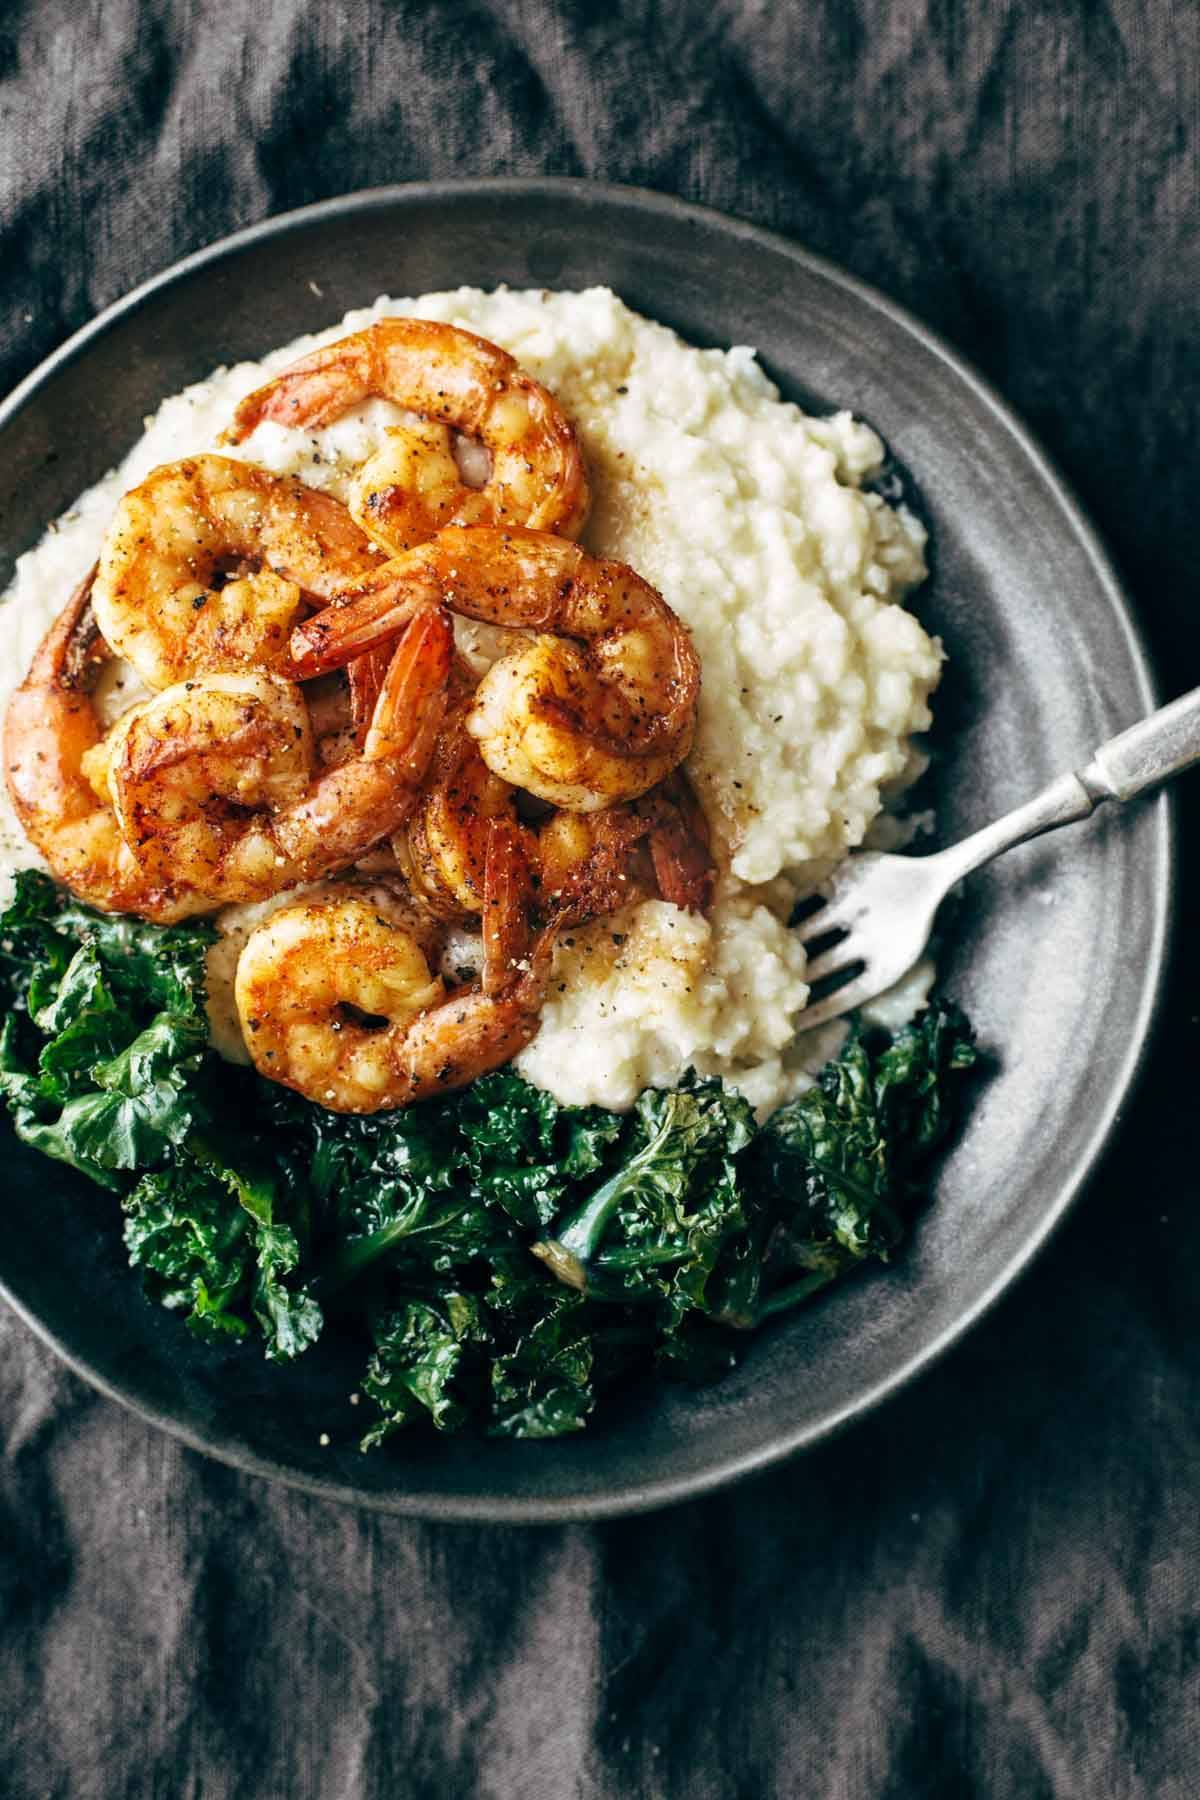 Shrimp with cauliflower mash and kale on a plate with a fork.